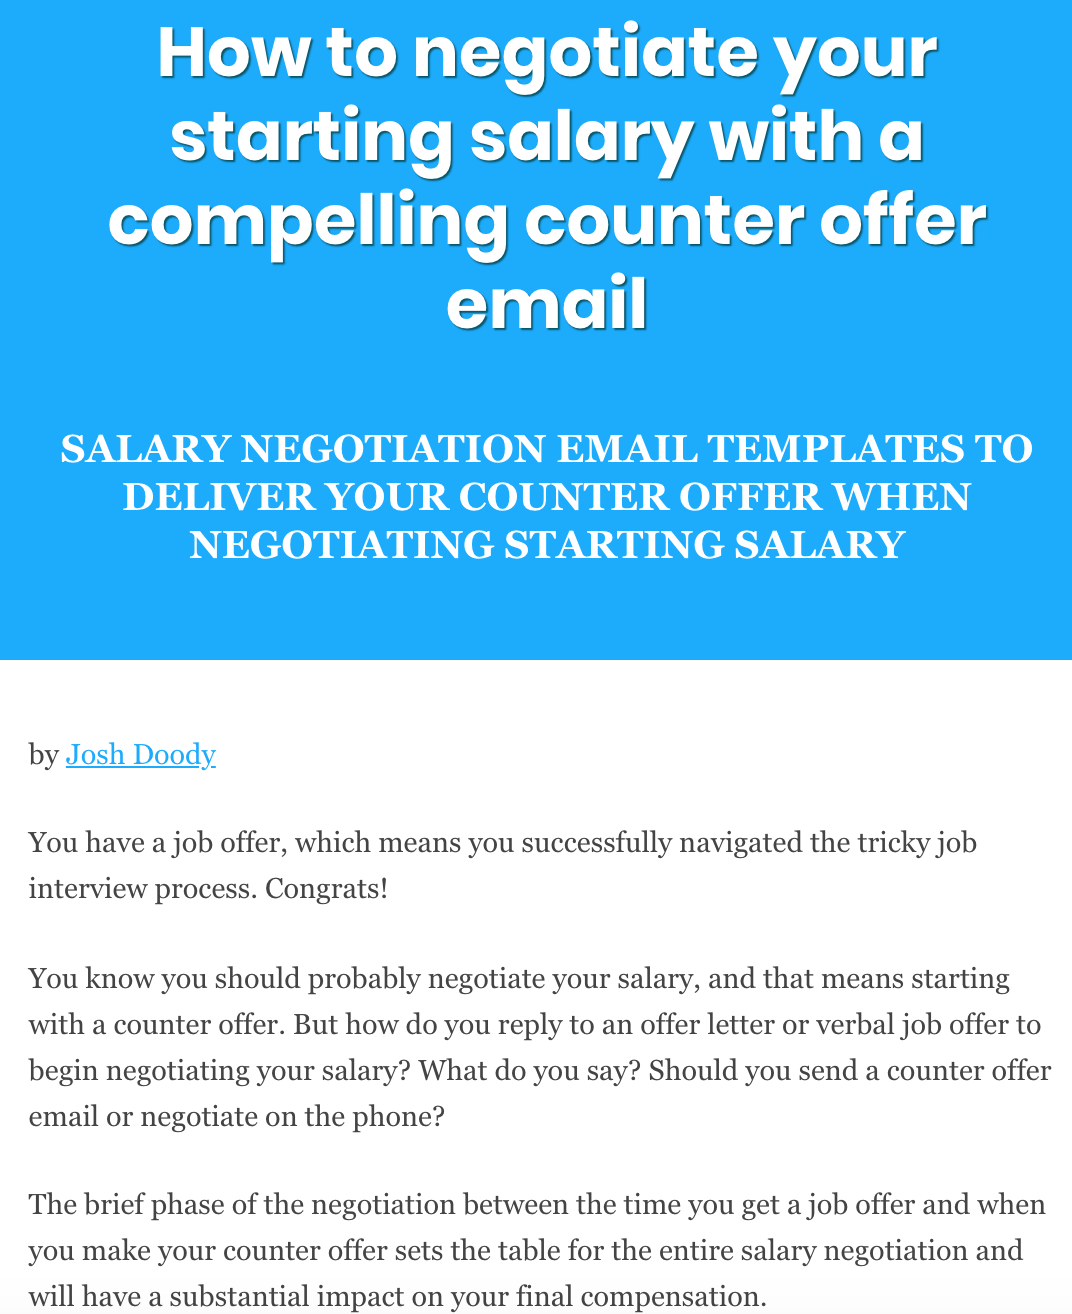 salary negotiation email sample counter offer letter good retail resume examples electrical engineering cv download curriculum vitae doc